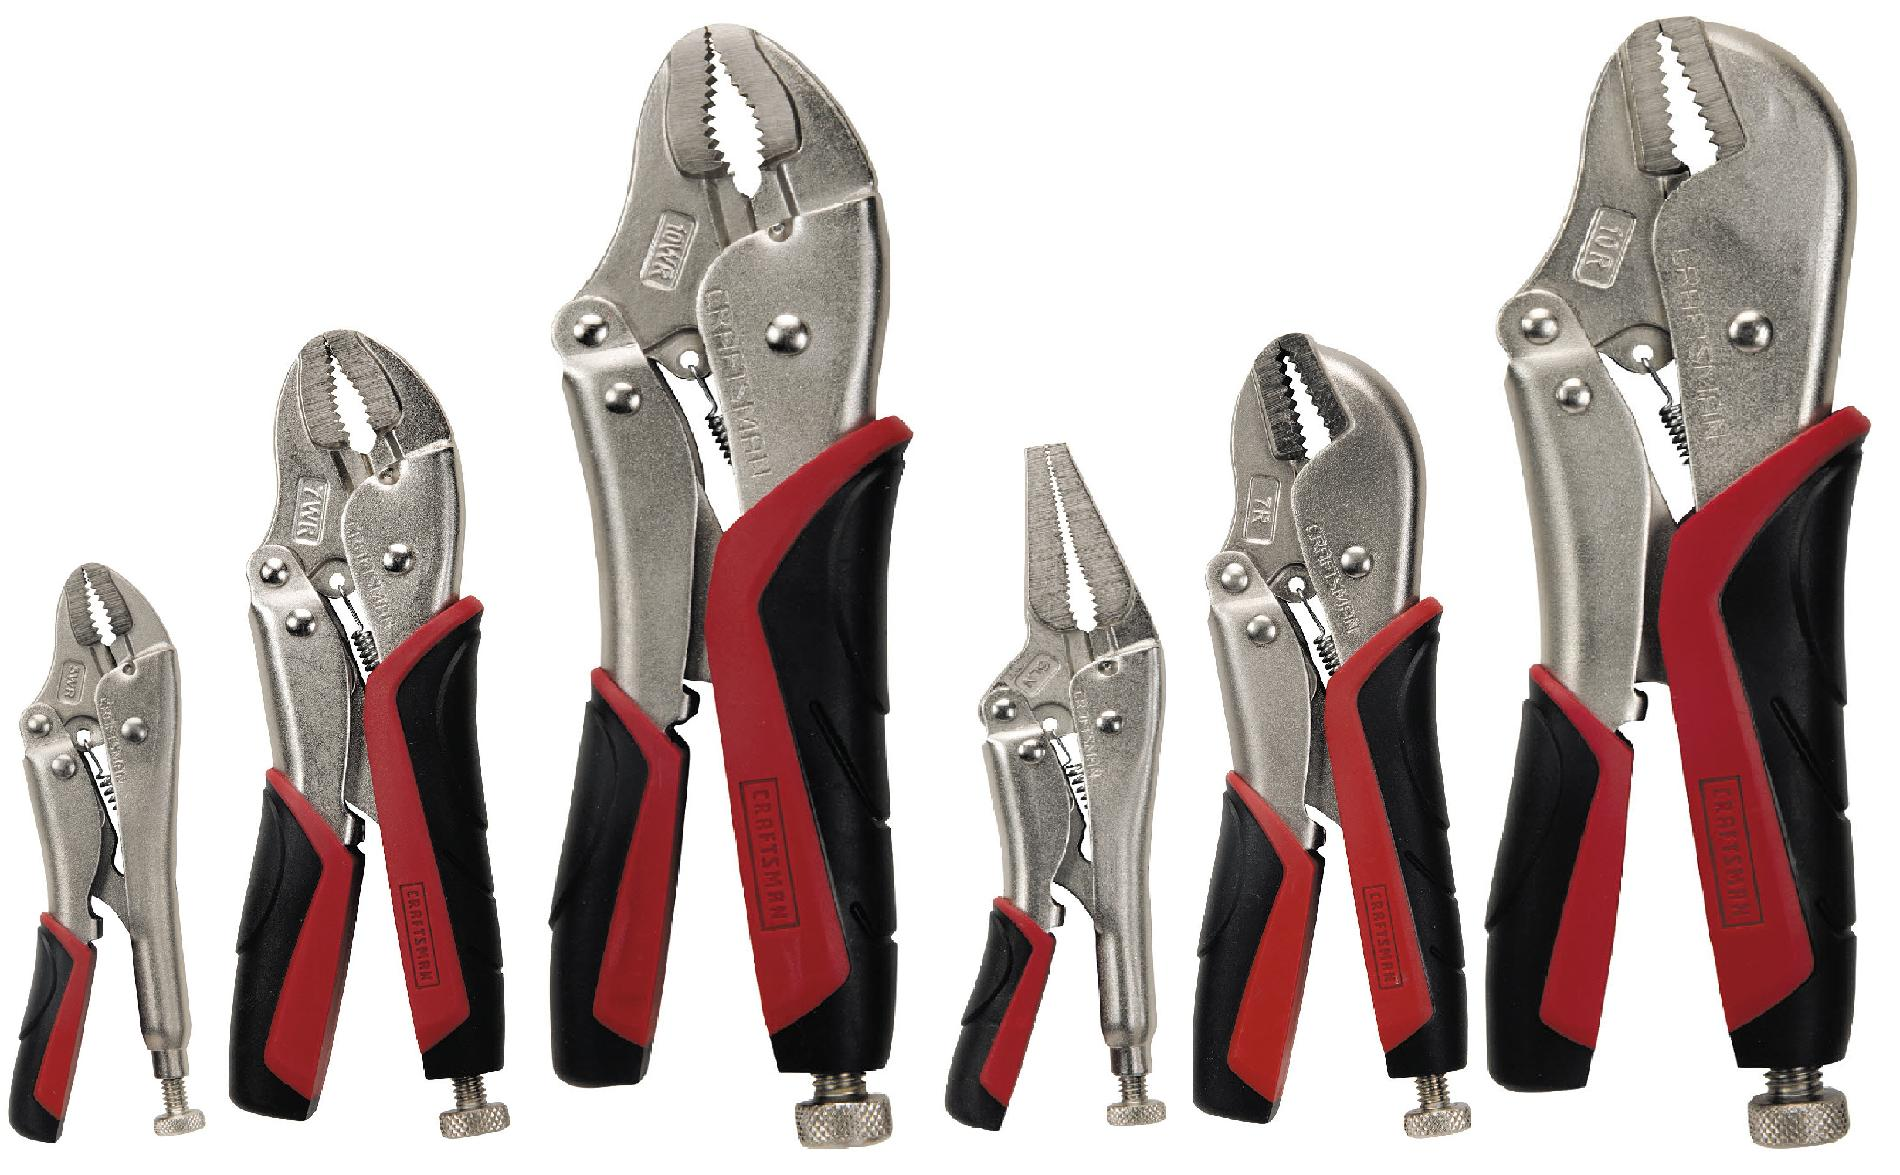 6 pc. Locking Pliers Set, Easy Release